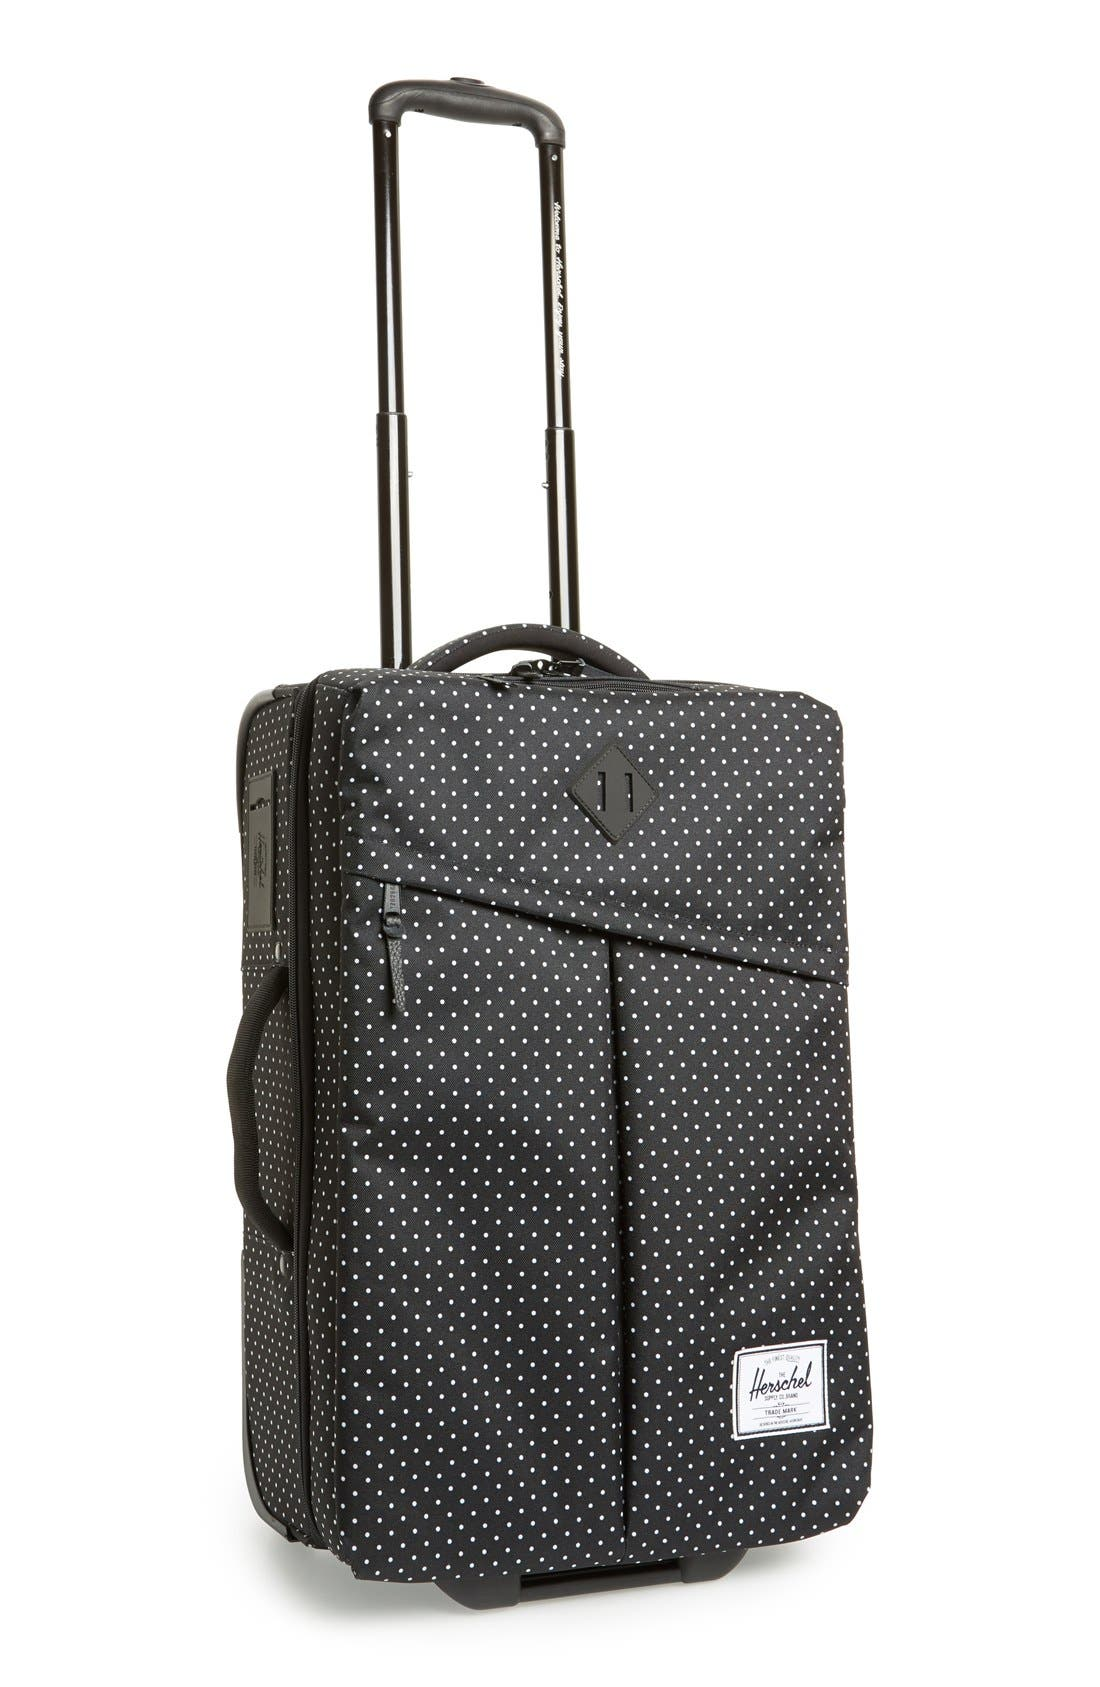 HERSCHEL SUPPLY CO., Herschel Supply Co 'Campaign' Wheeled Carry-On, Main thumbnail 1, color, 005